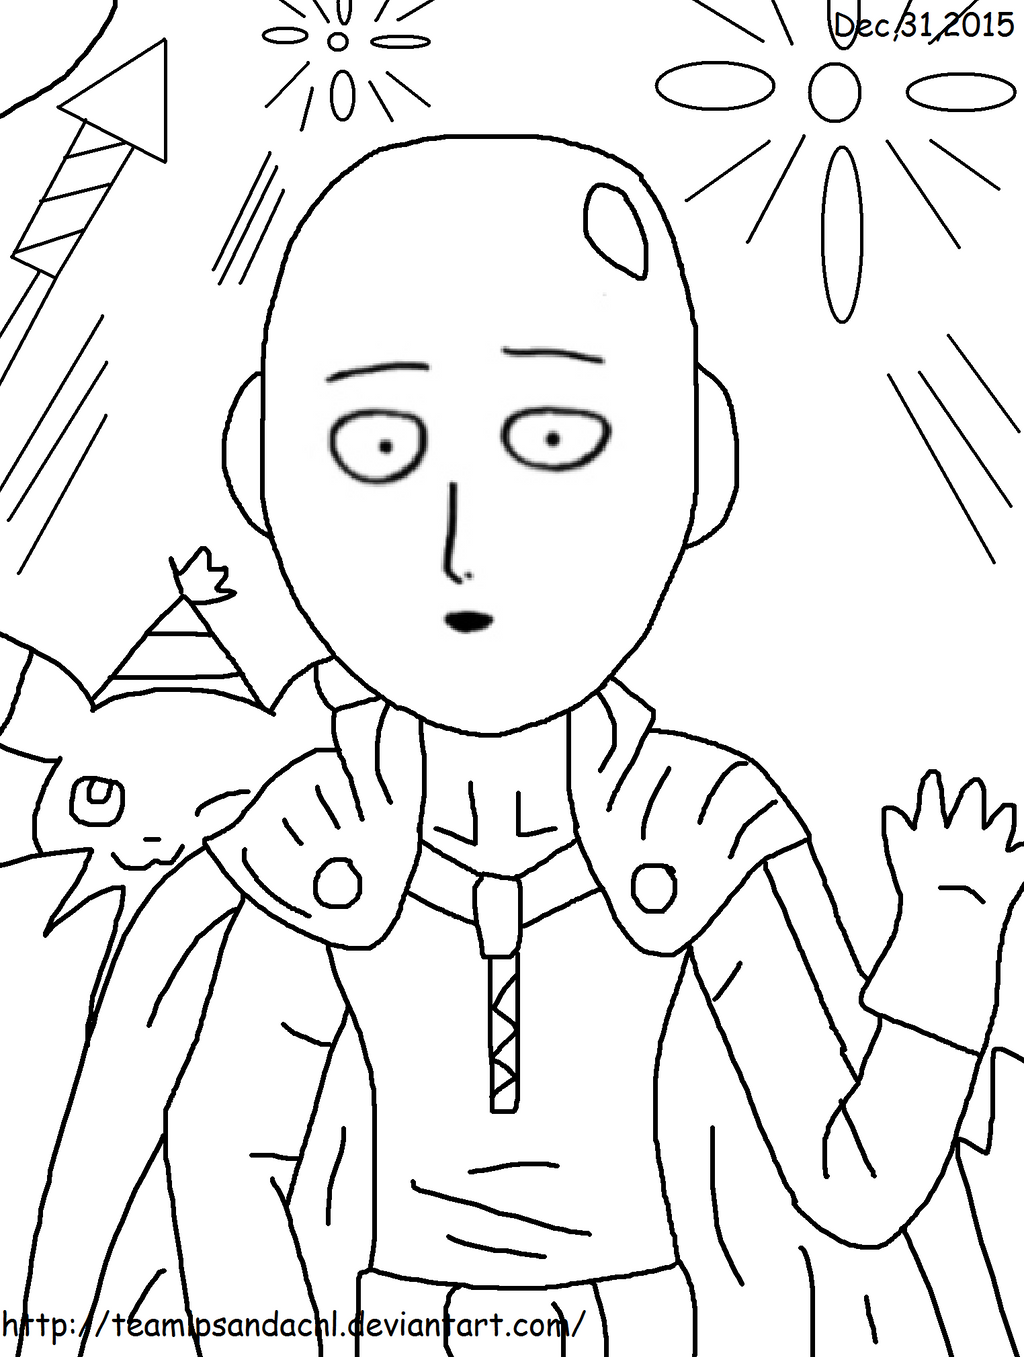 Line Art Year 5 : New year saitama line art by teamlpsandacnl on deviantart